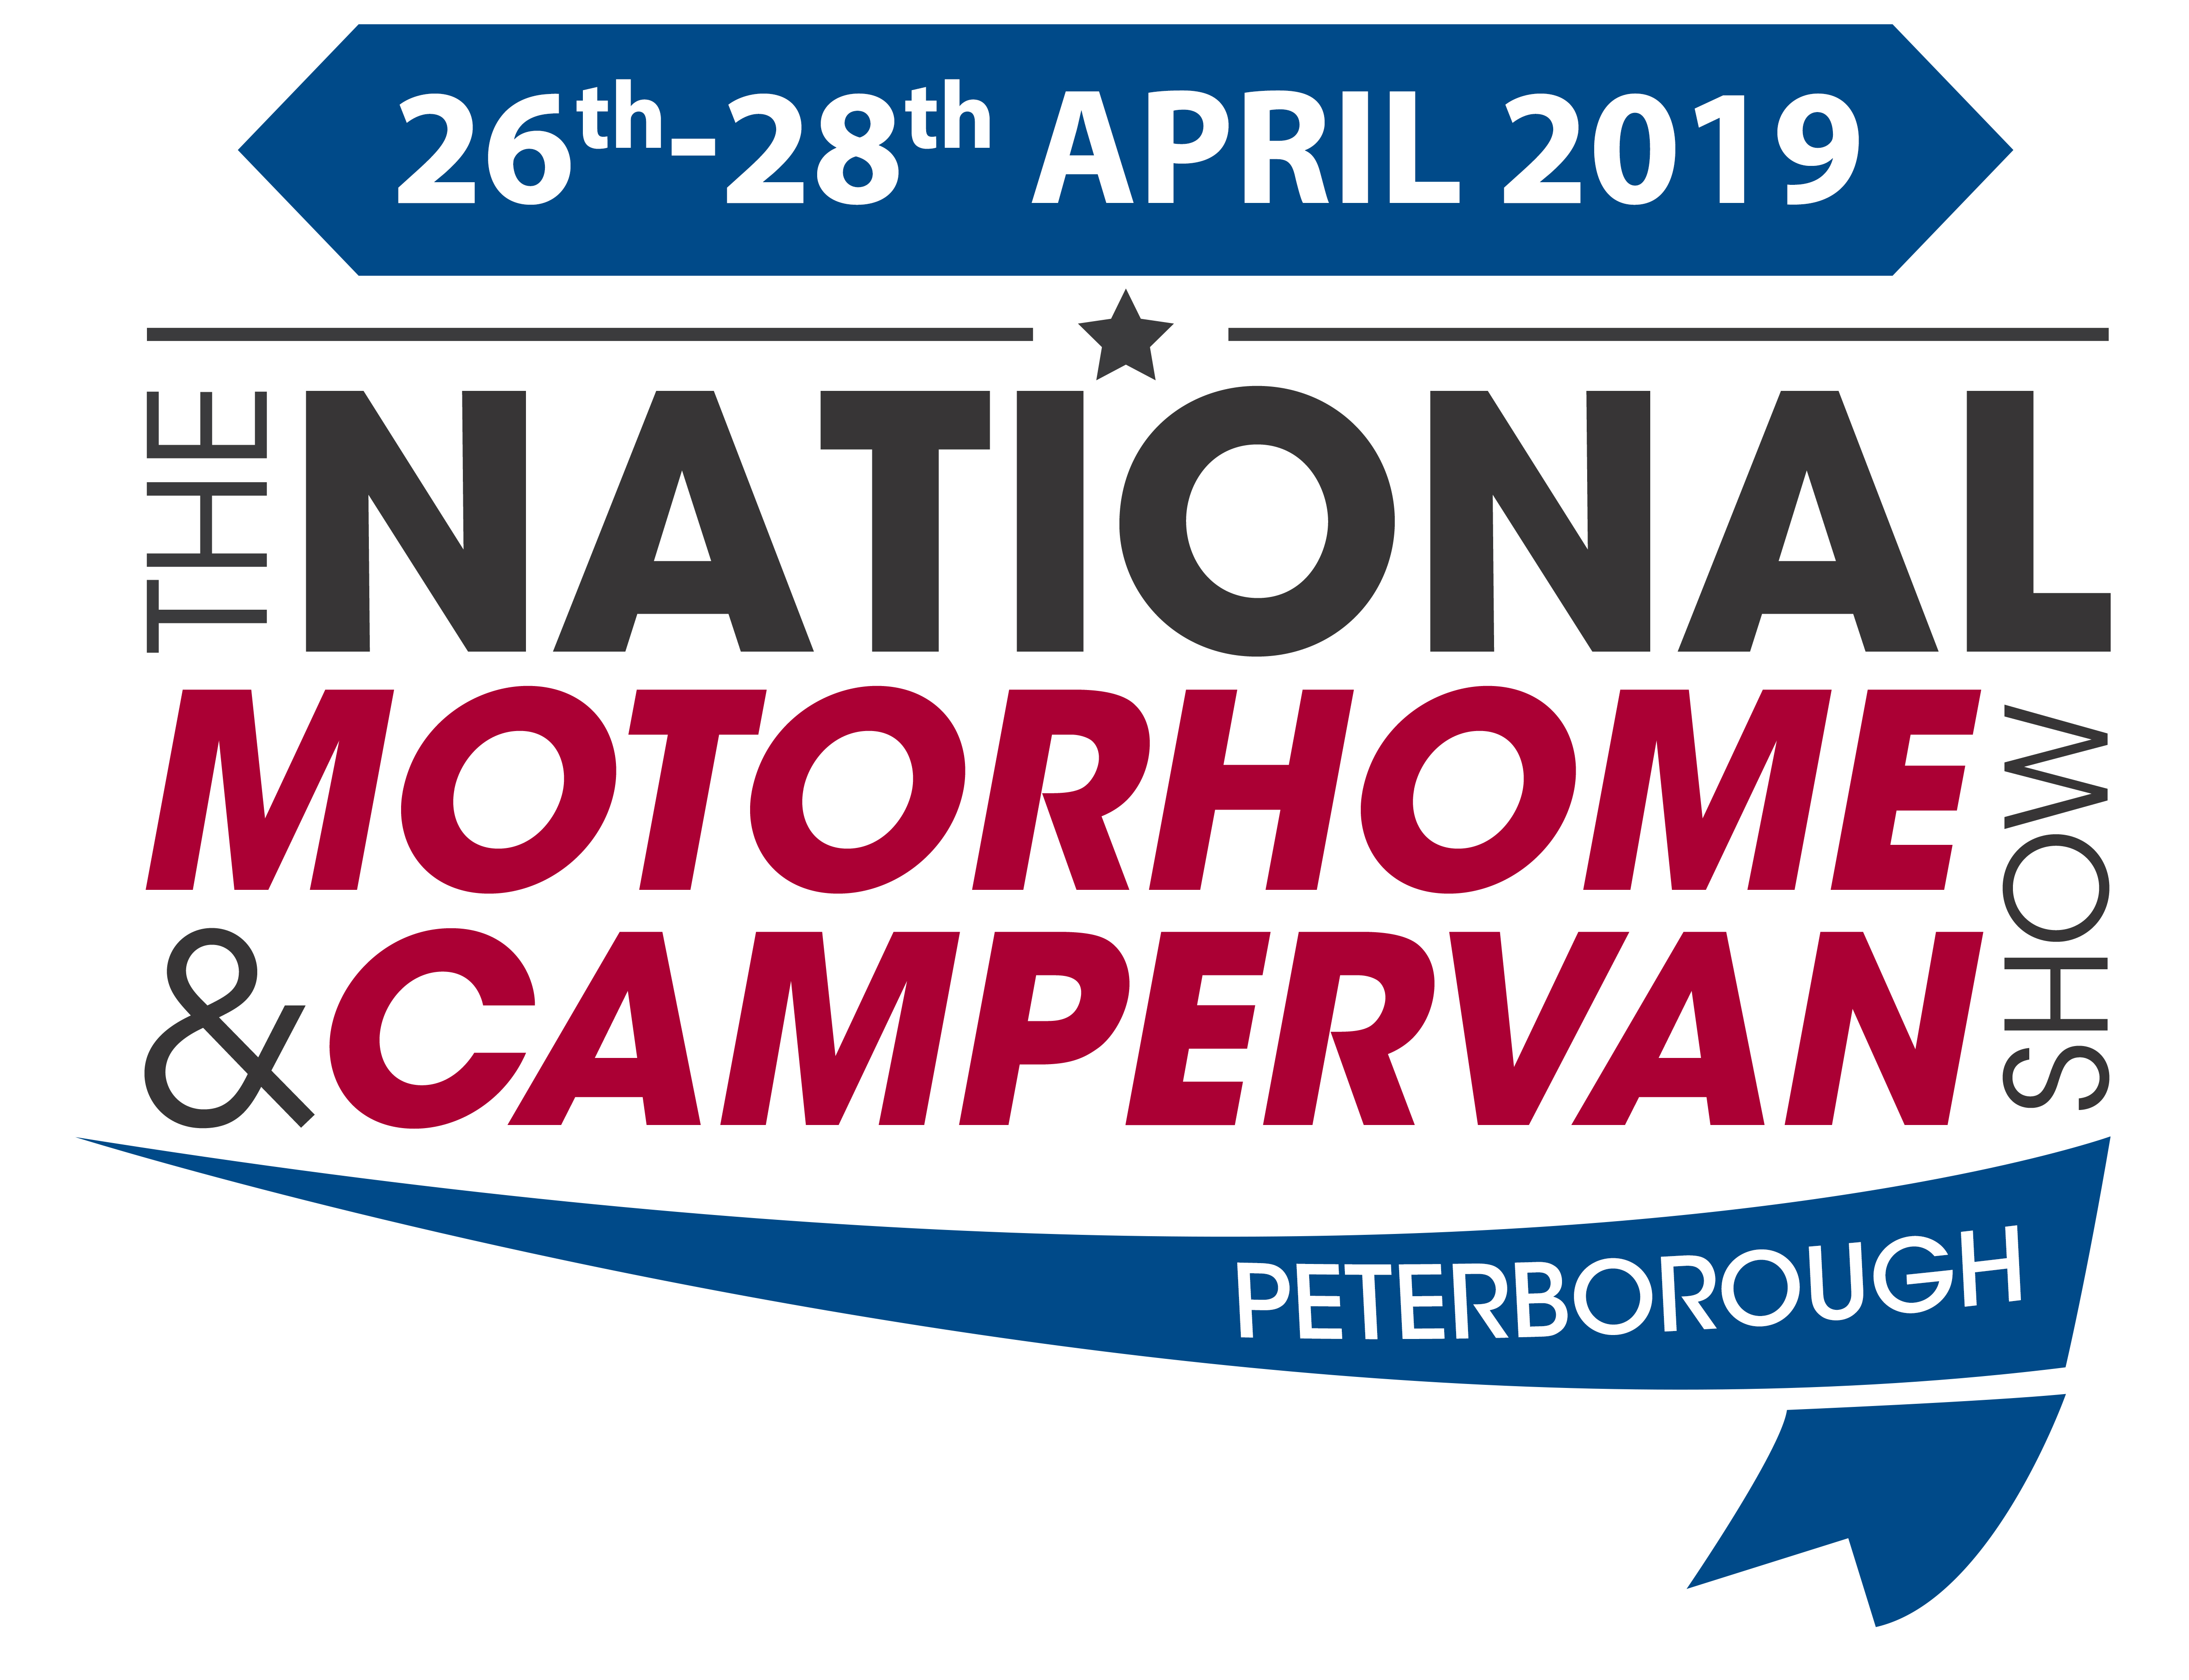 The National Motorhome & Campervan Show – 26th – 28th April 2019